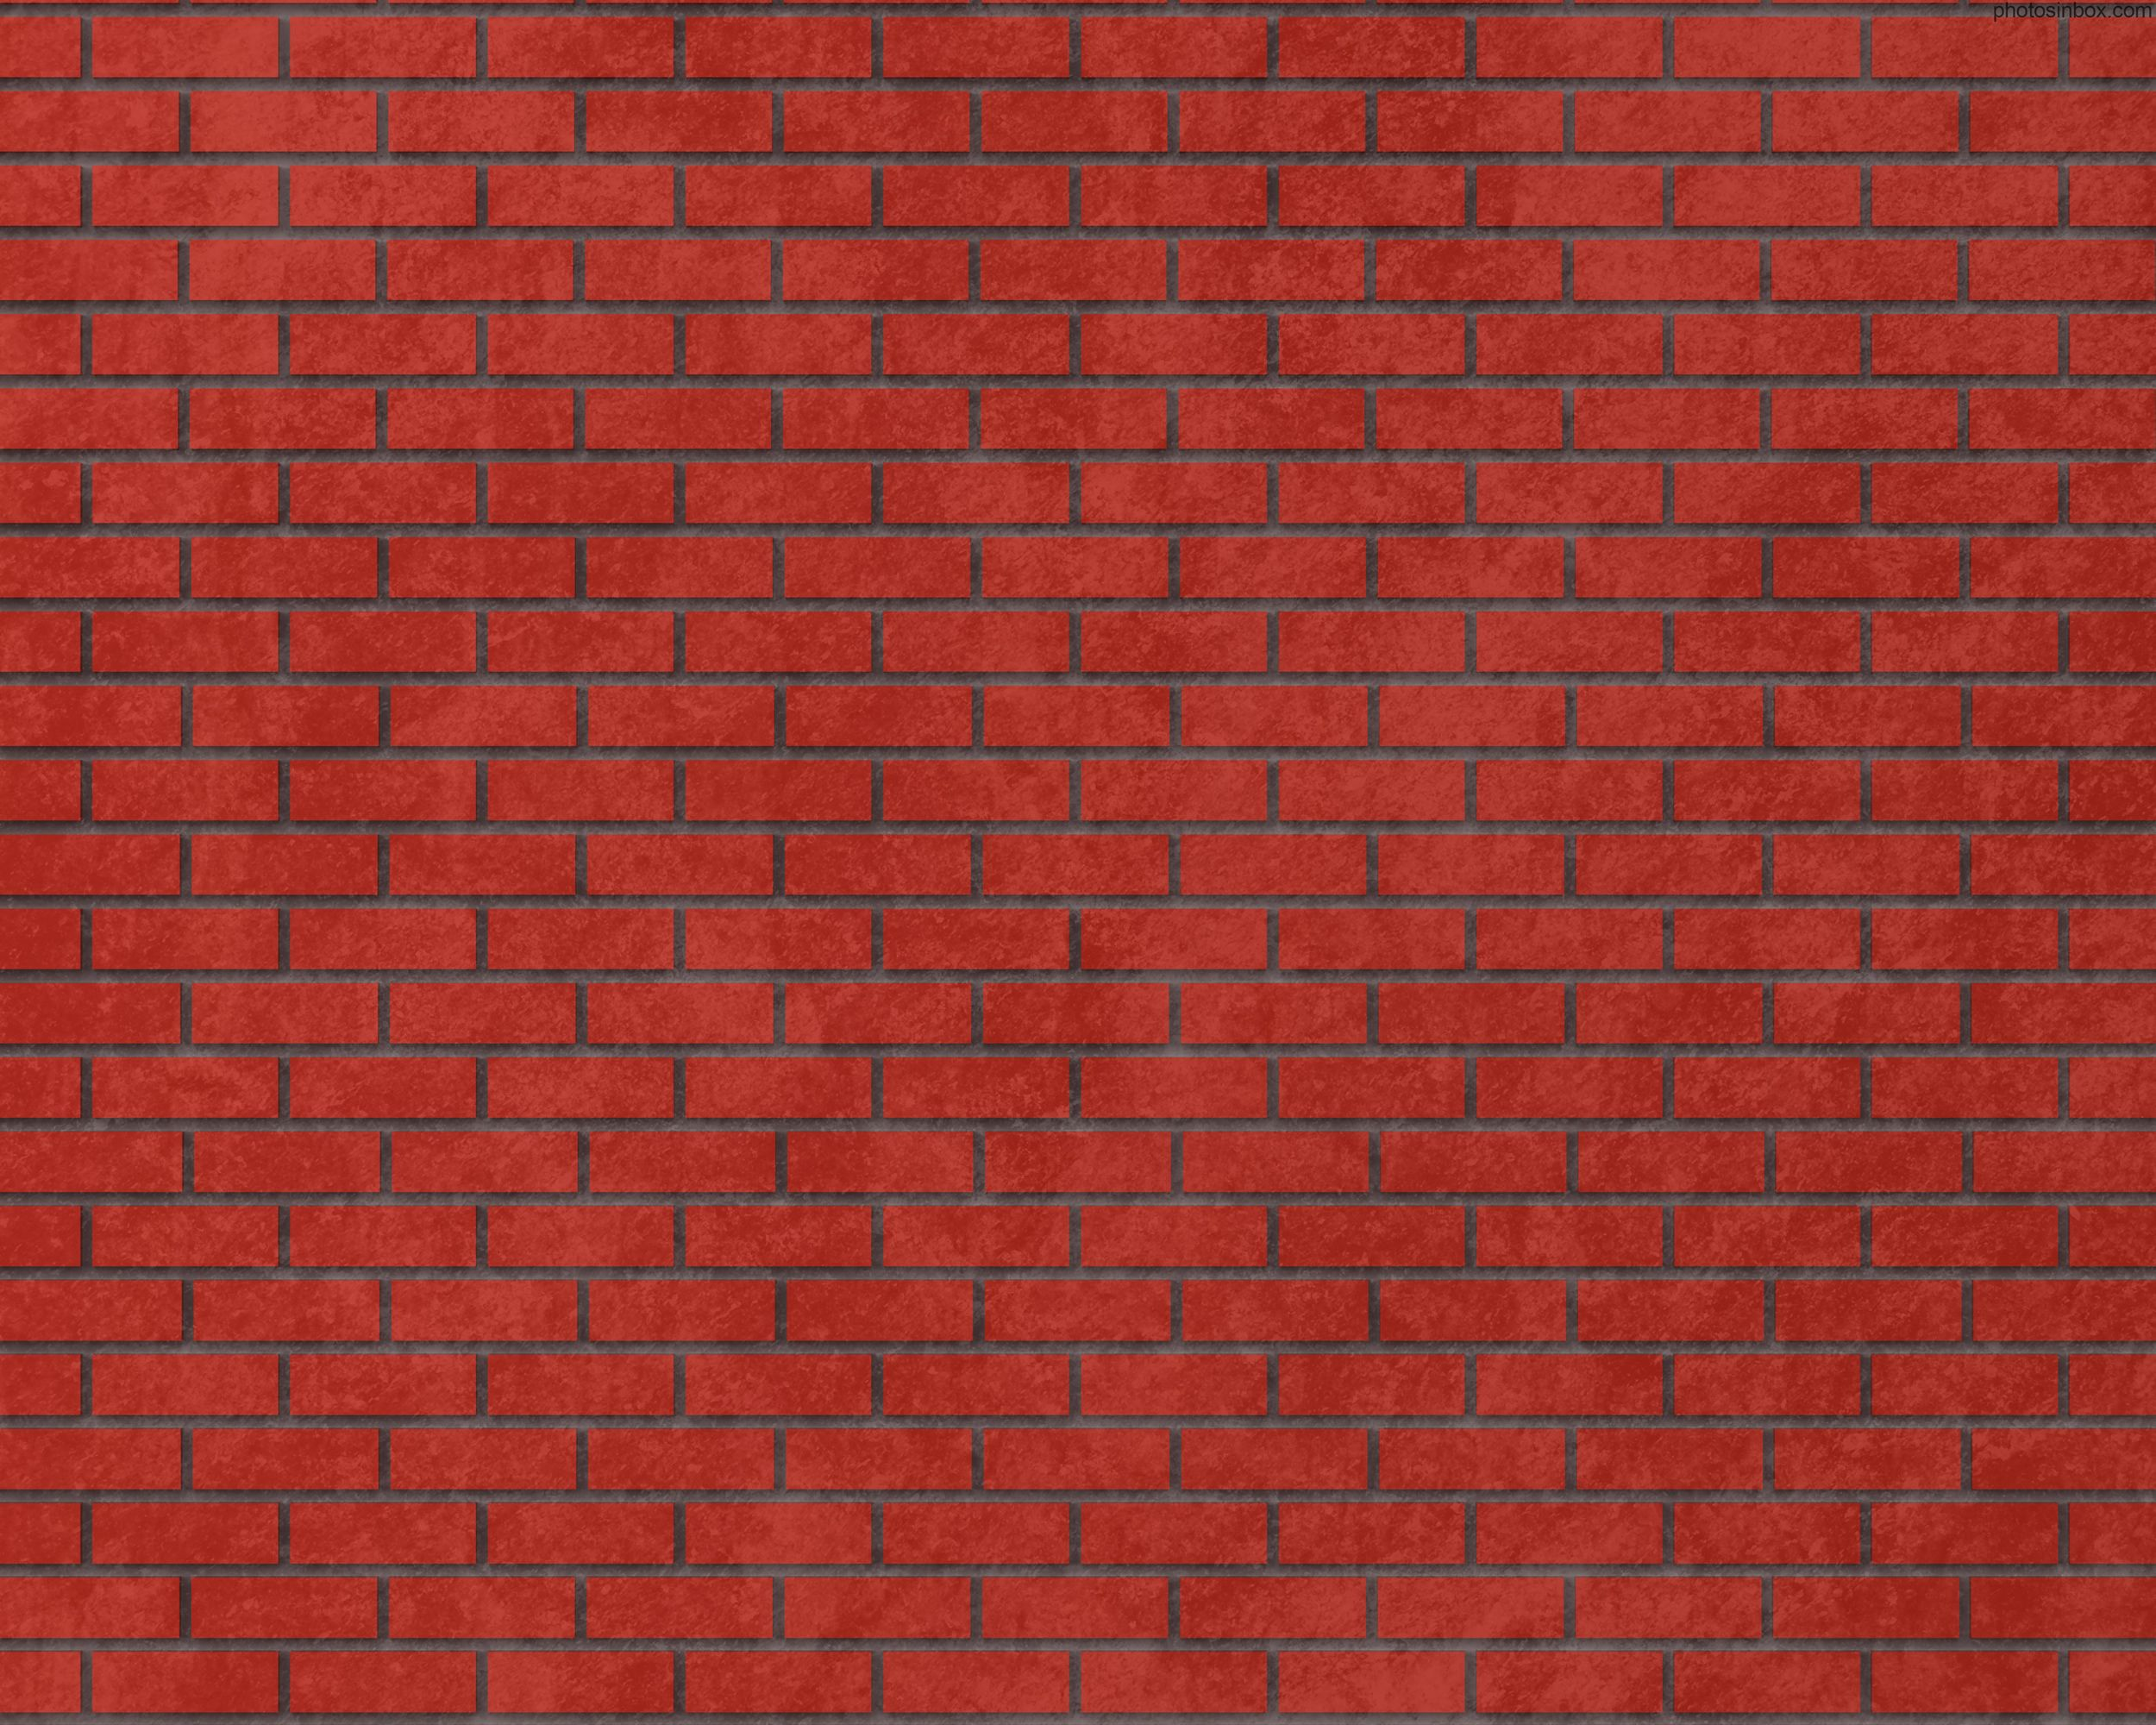 Red Brick Wall Texture Bricks Background